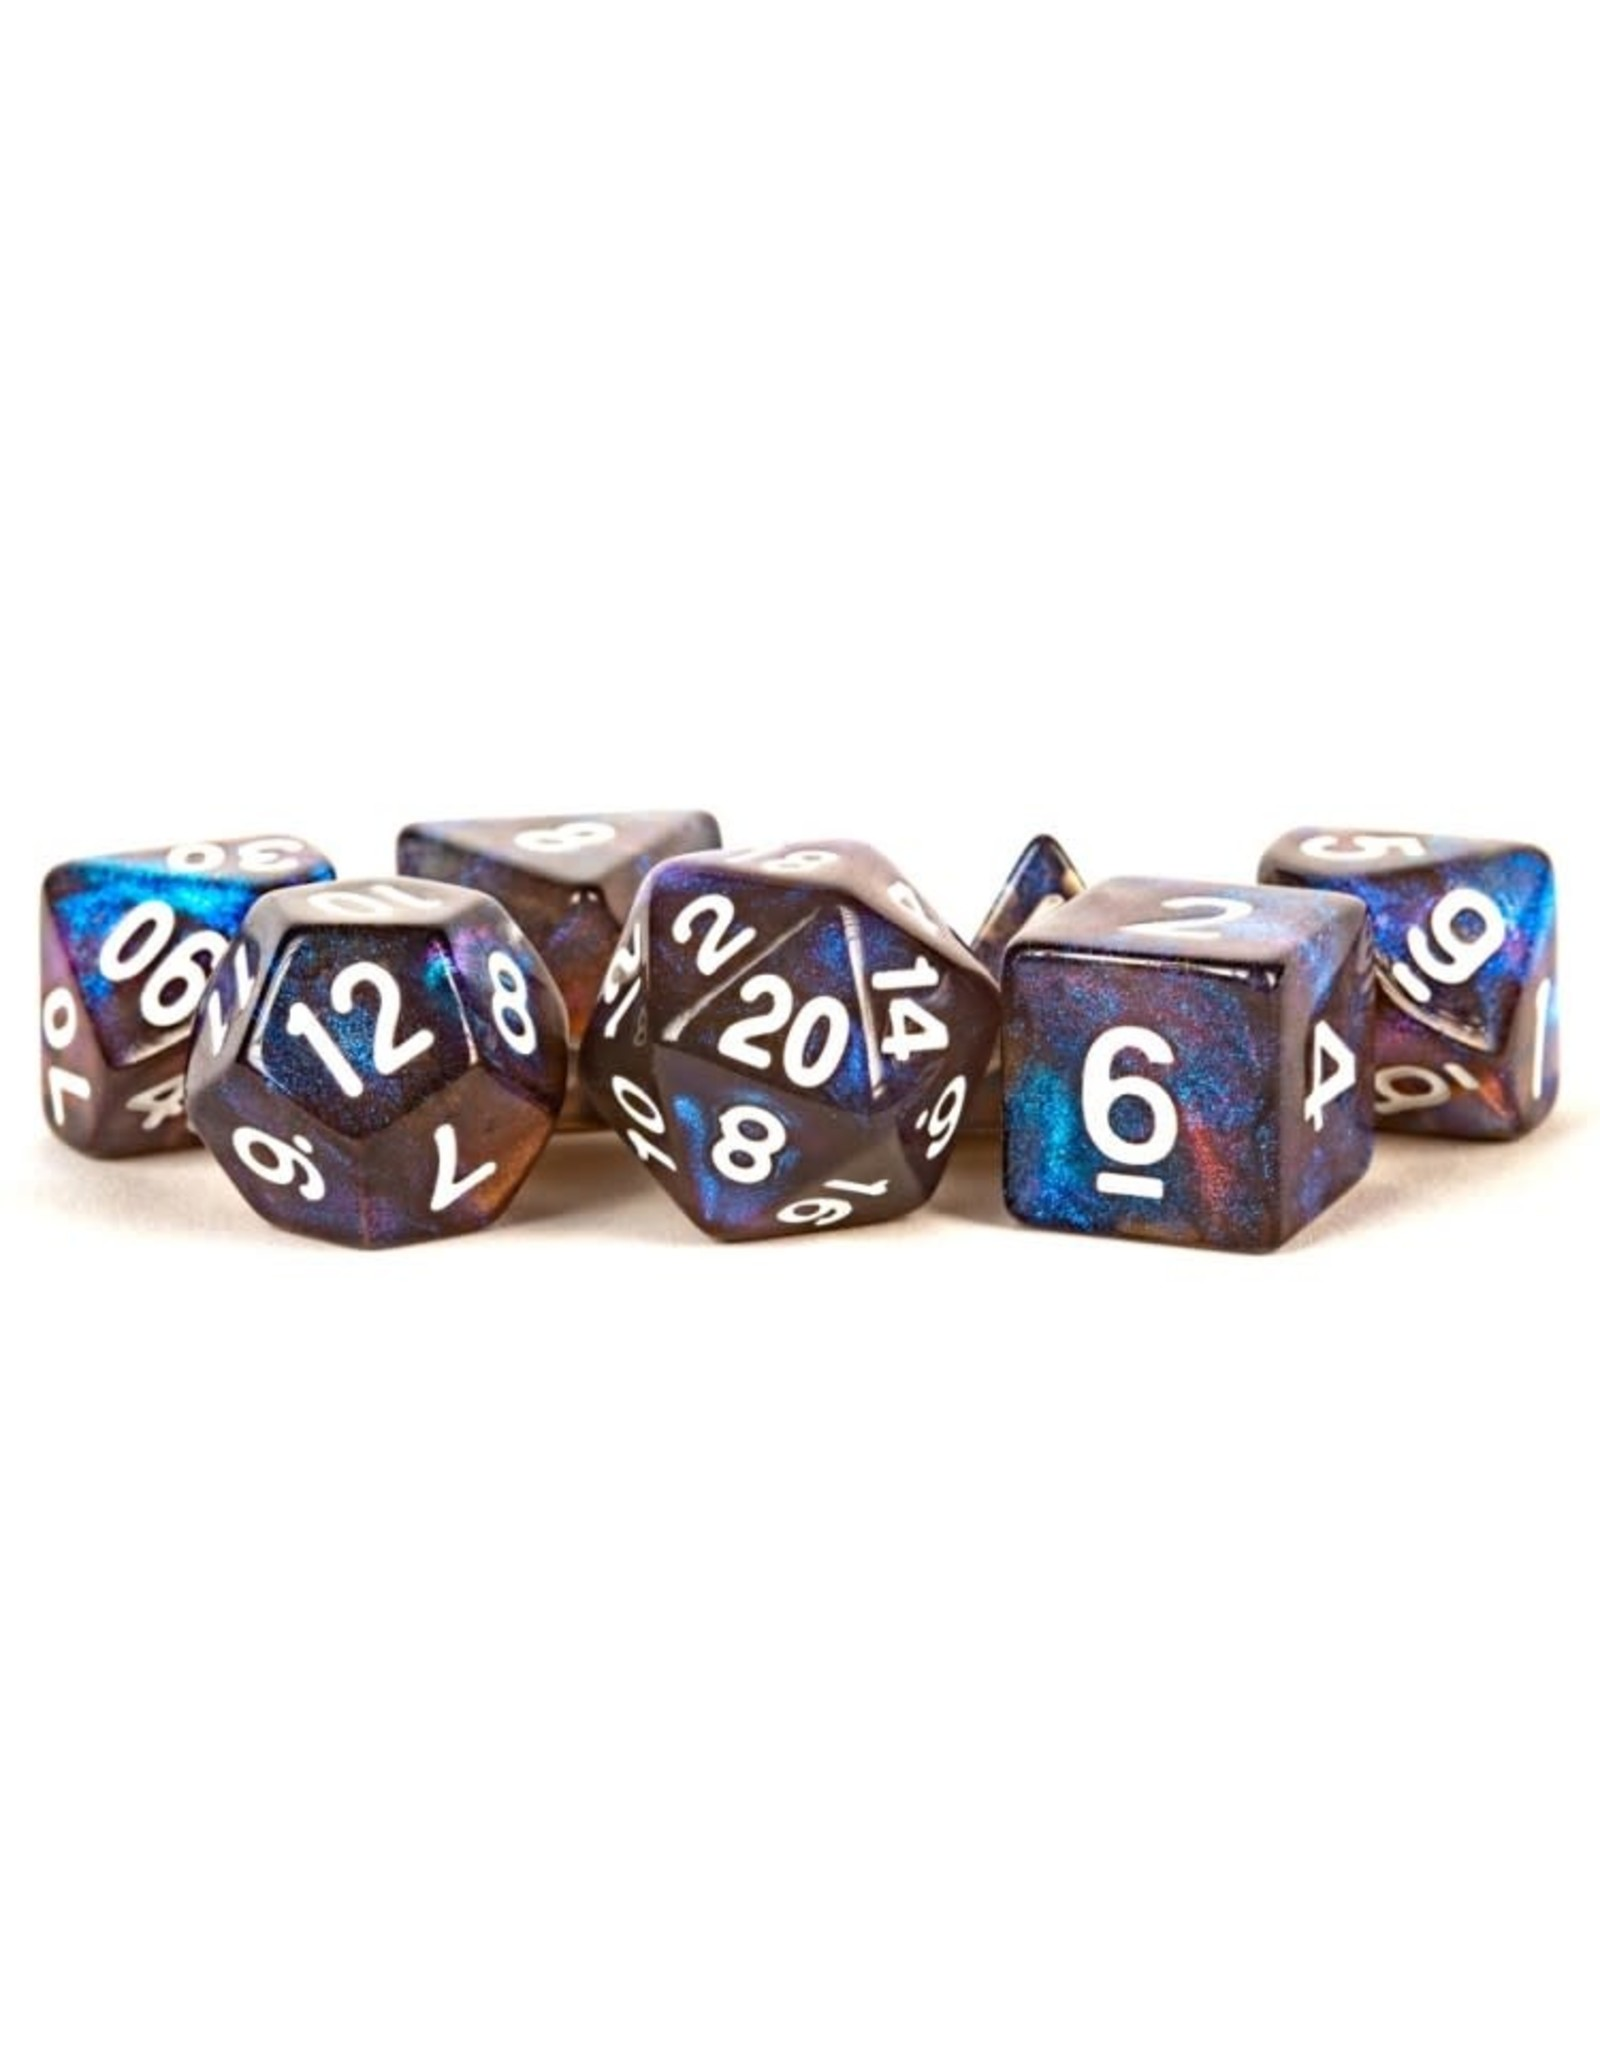 Metallic Dice Games 7-Set: Stardust: Galaxy